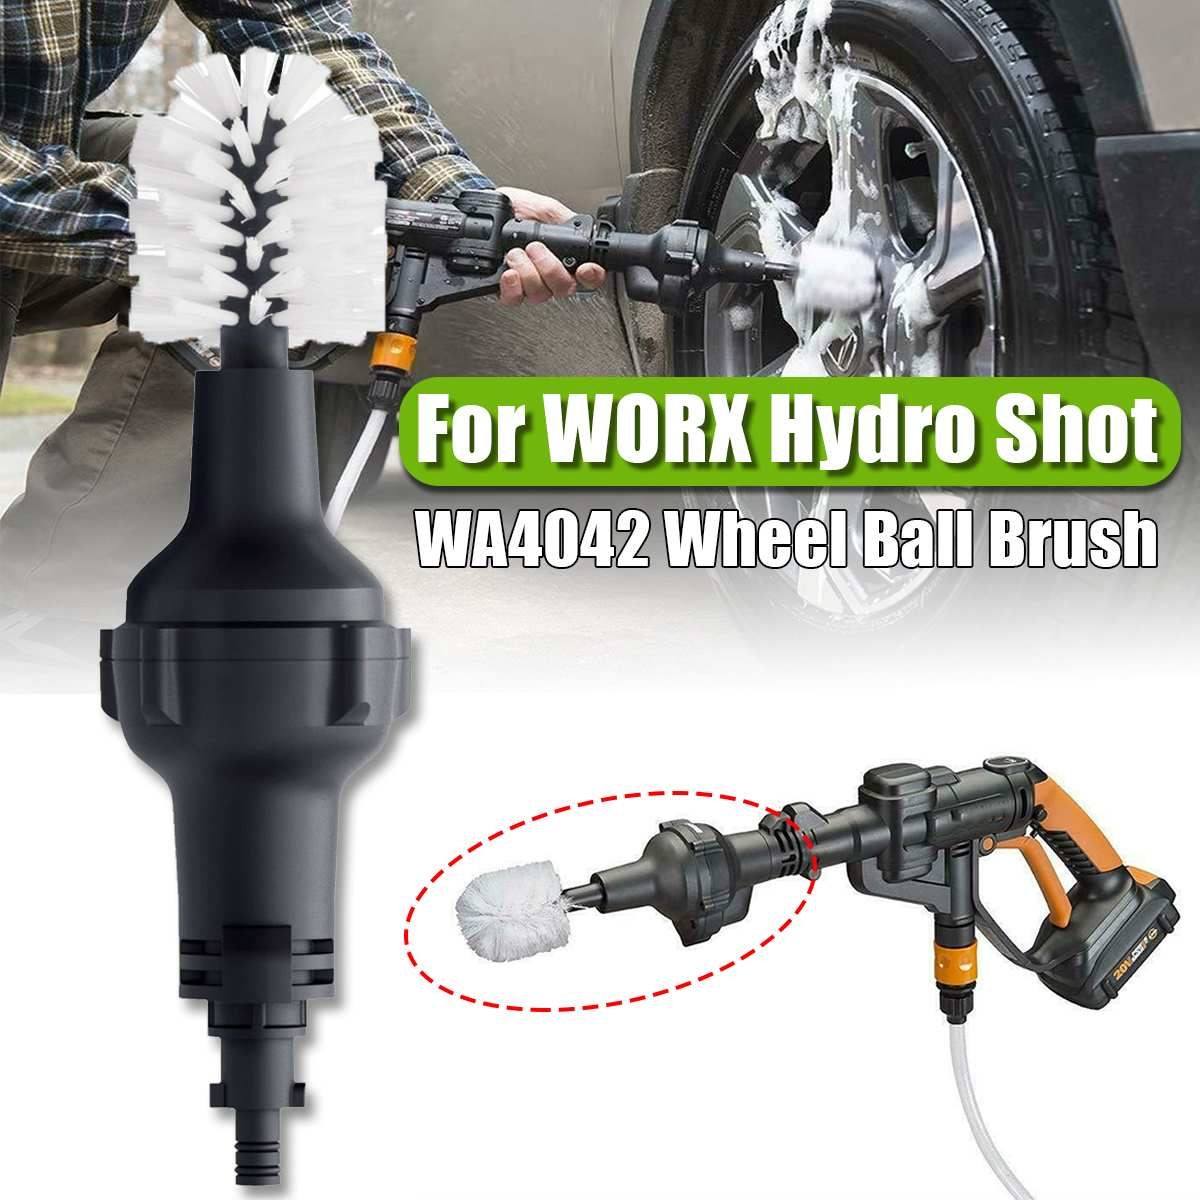 Wheel Ball Brush Accessory For WORX WA4042 Hydroshot